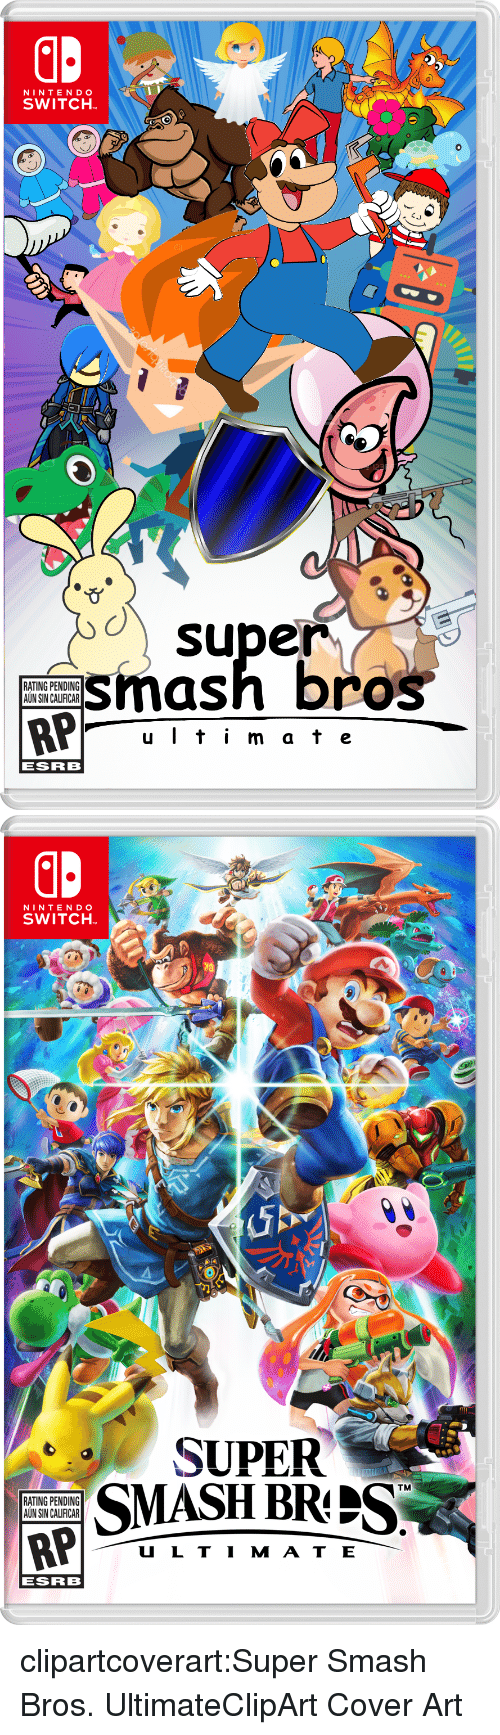 clipart: NINTENDO  SWITCH  o super  smash bros  RATING PENDING  AUN SIN CALIFICAR  u Iti m at e  ESRB   NINTENDO  SWITCH  SUPER  SMASH BRIS  TM  RATING PENDING  AUN SIN CALIFICAR  U L TI M AT E  ESRB clipartcoverart:Super Smash Bros. UltimateClipArt Cover Art